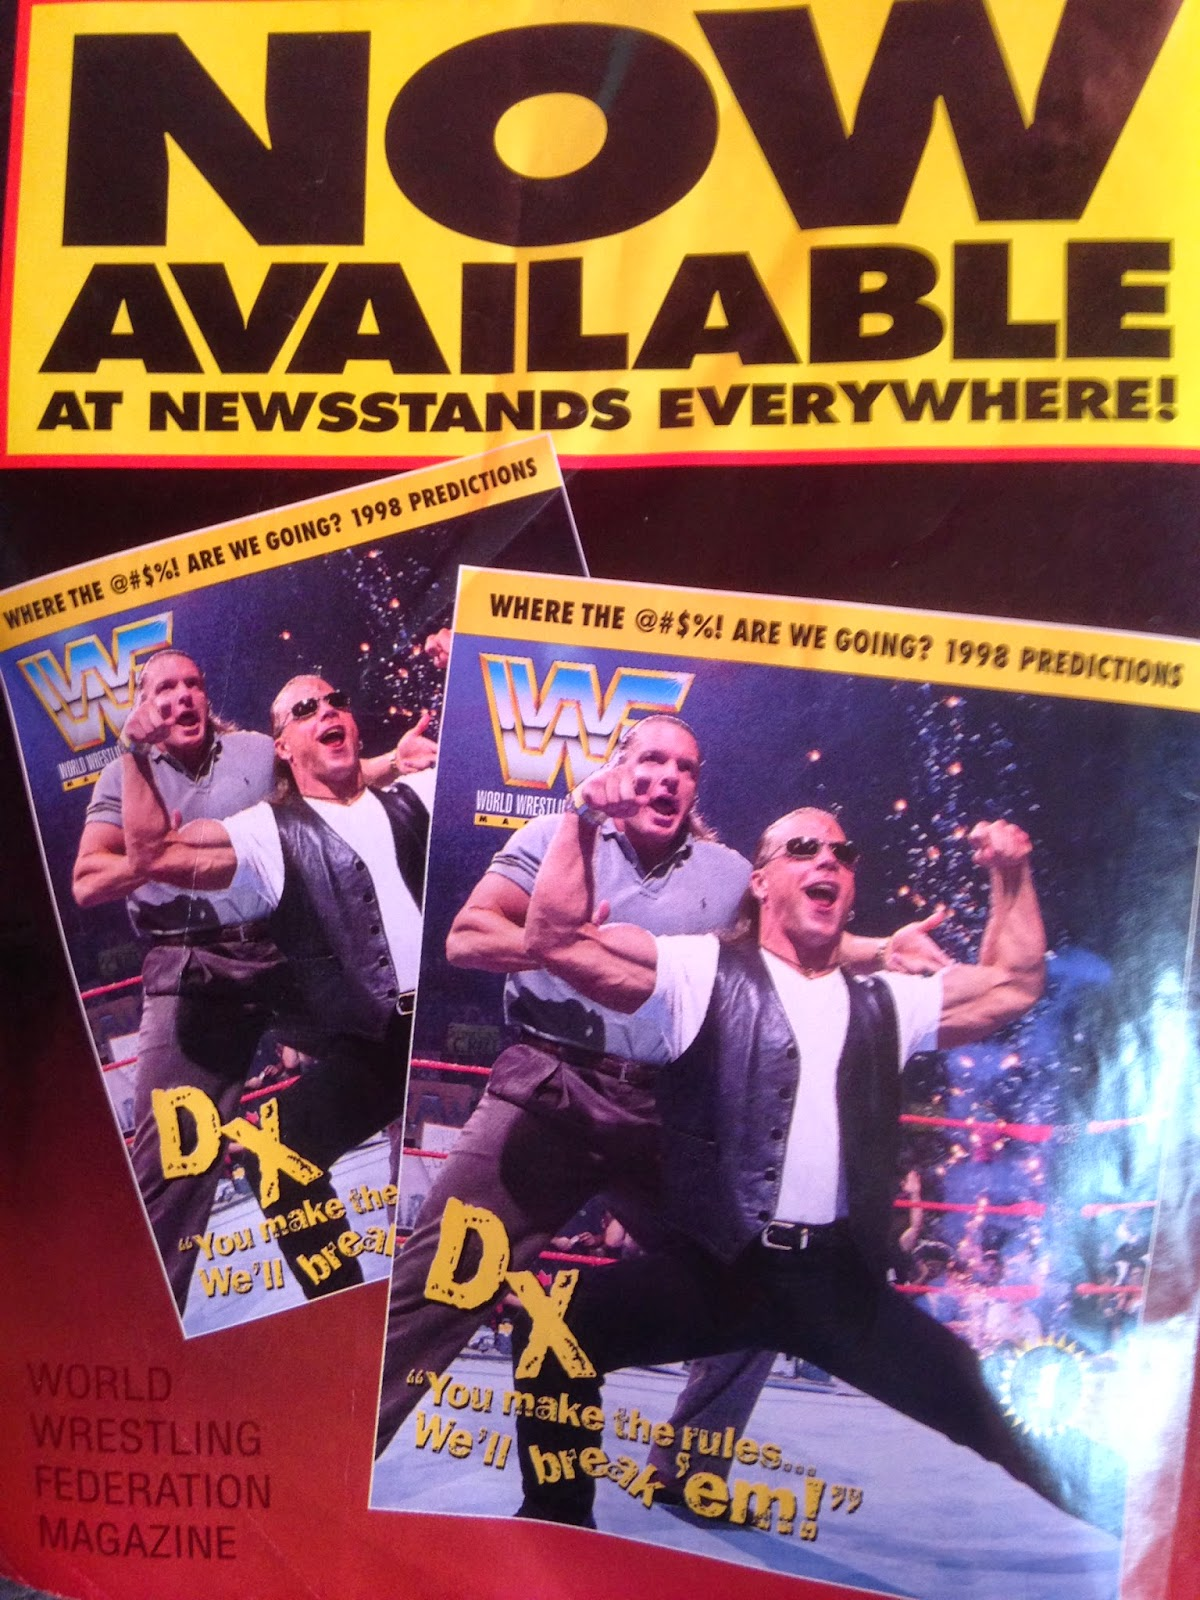 WWF Raw Magazine - January 1998 - DX magazine ad